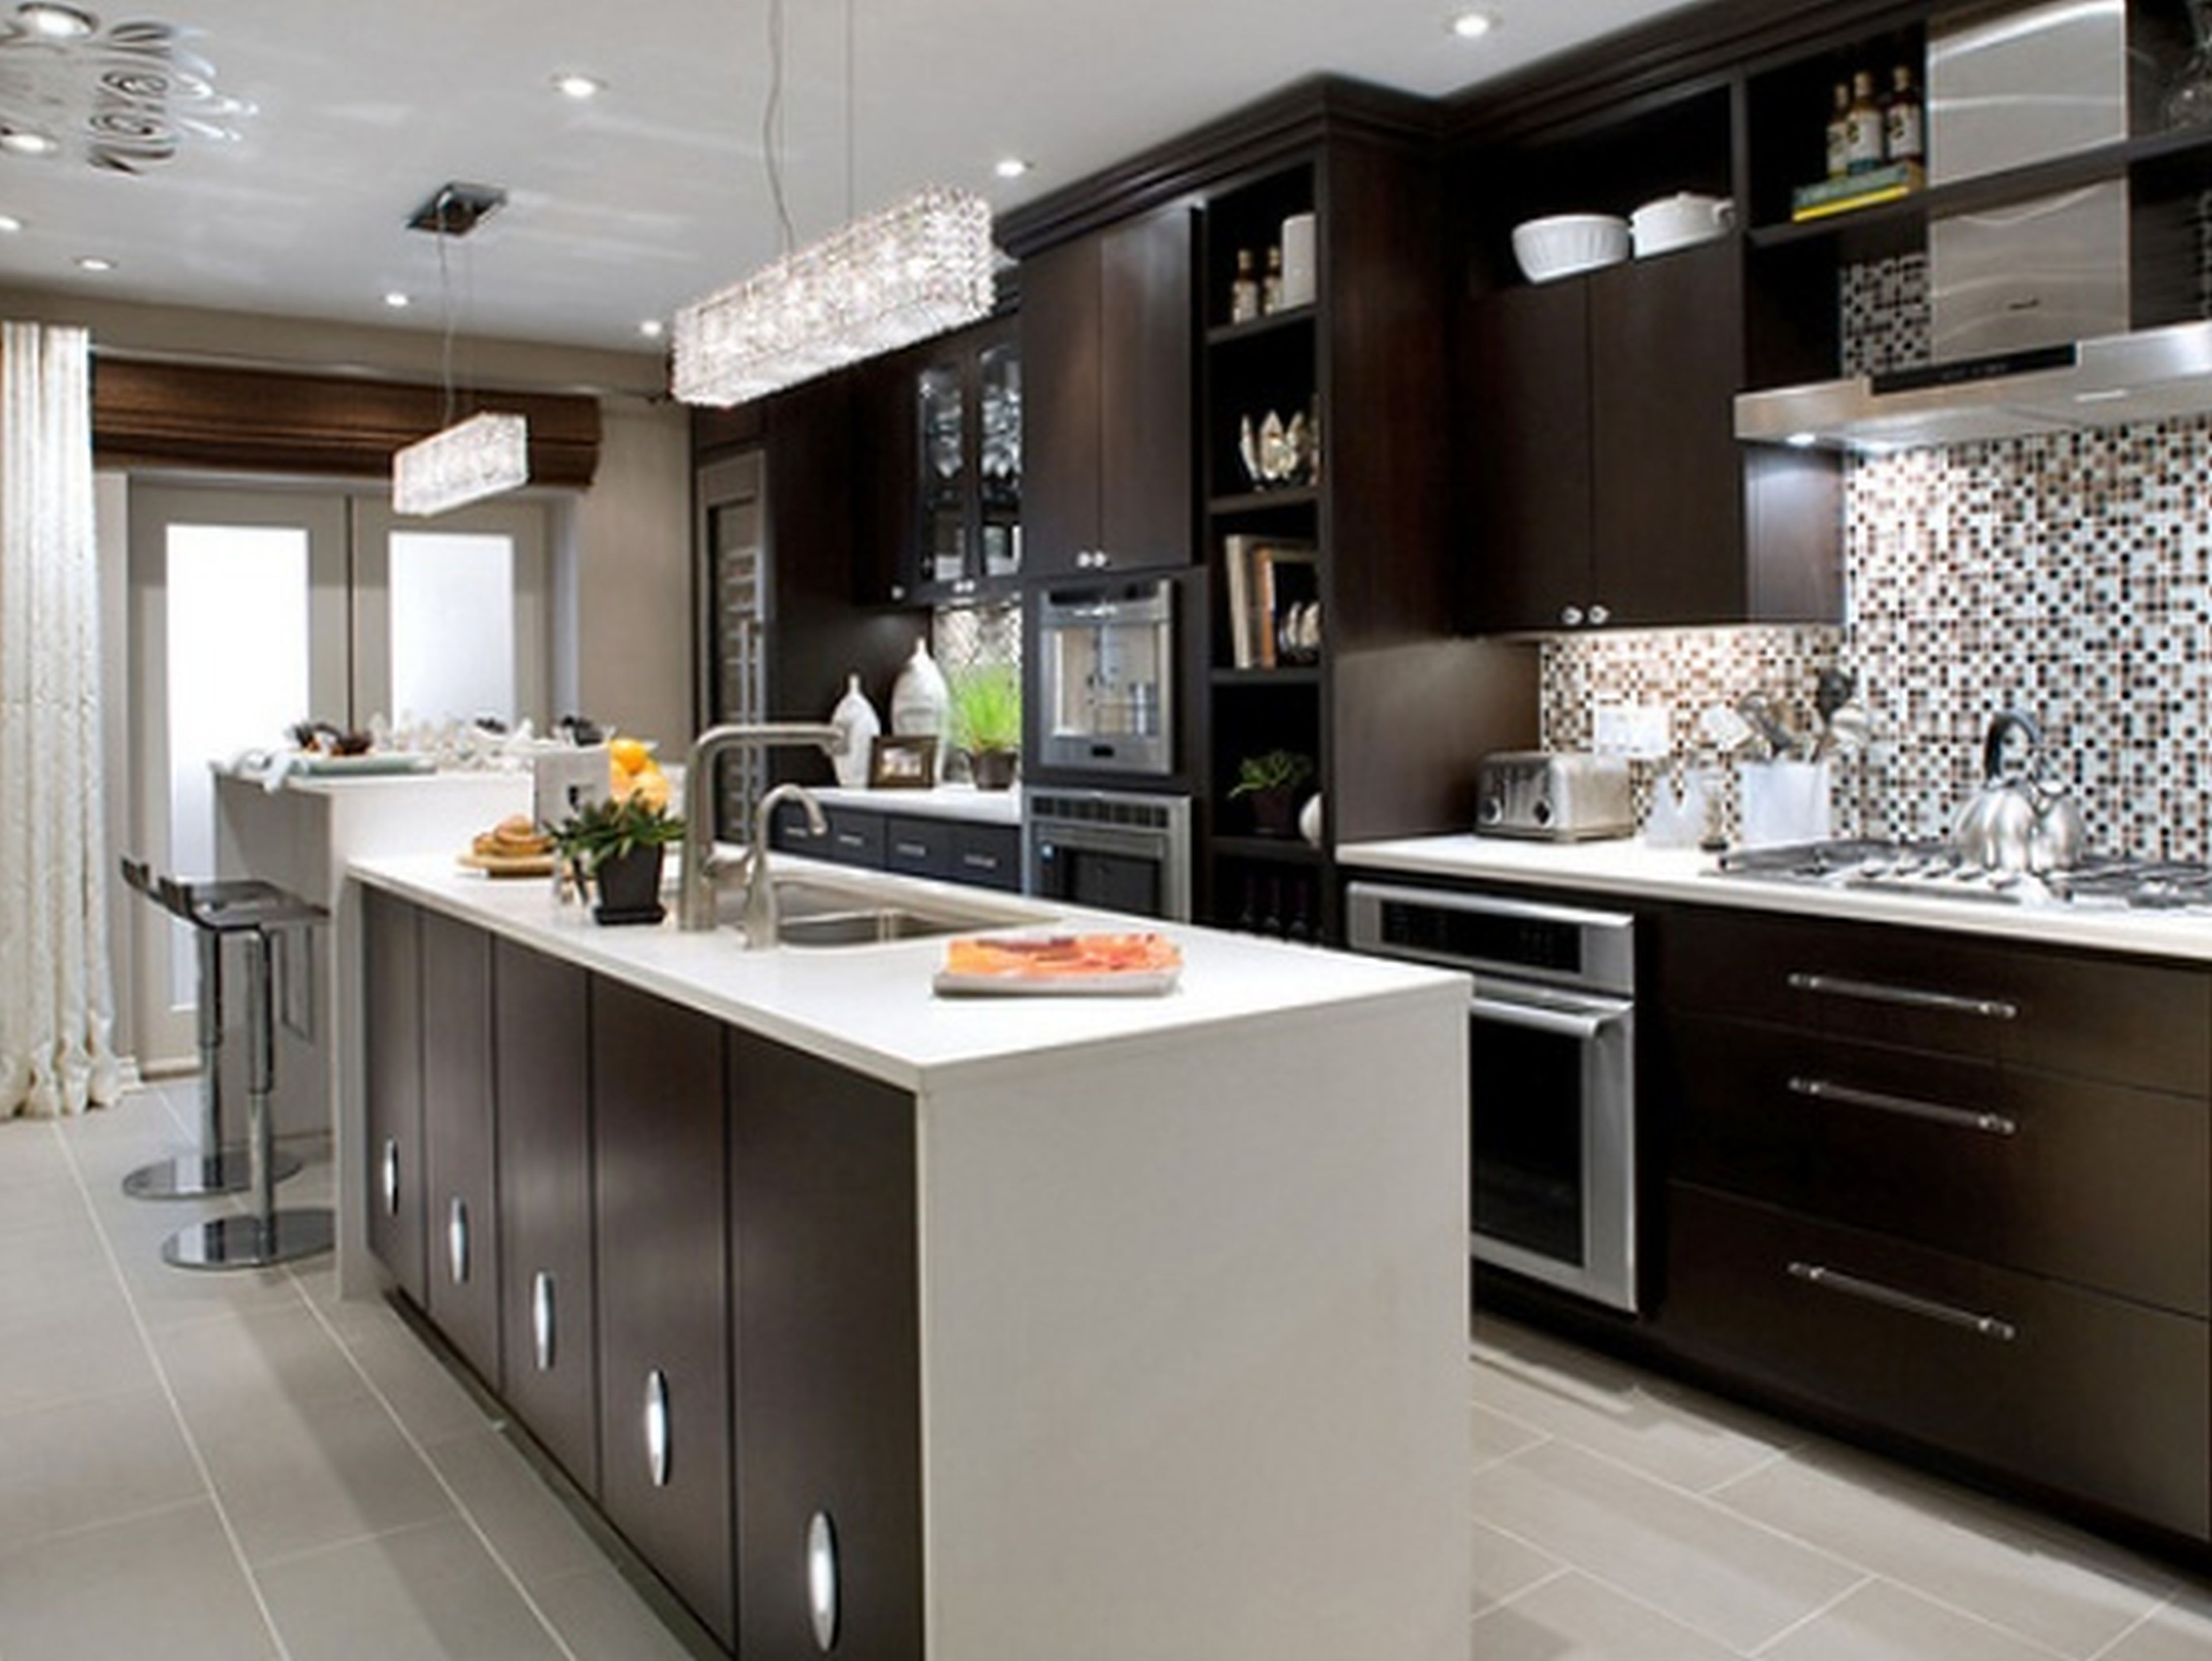 Küche Modern Vintage Modern Decorating Ideas For Kitchens Modern Kitchen Design